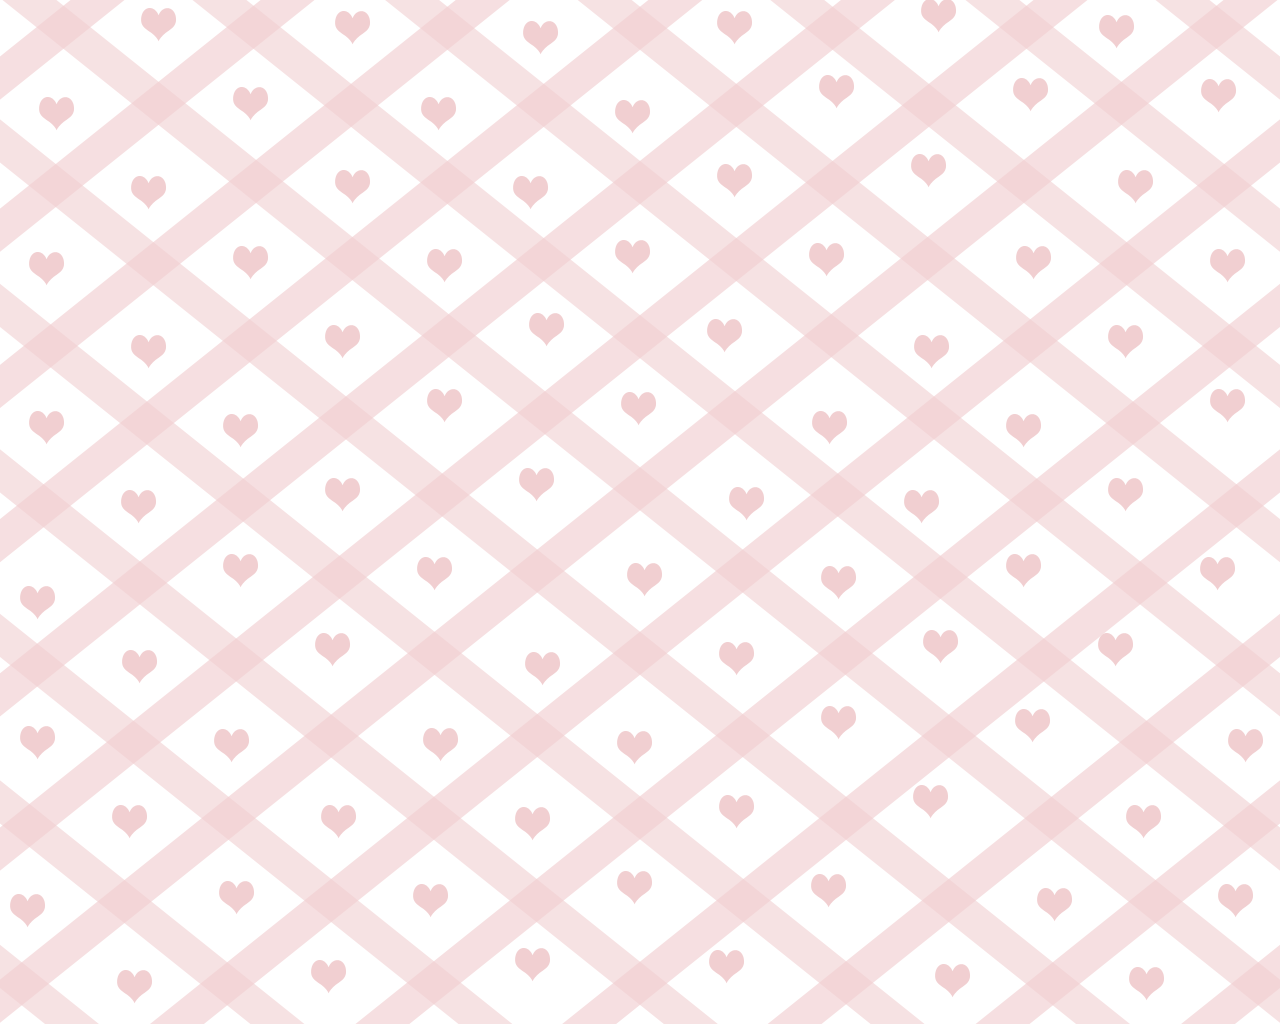 Pink Hearts Backgrounds - Wallpaper Cave